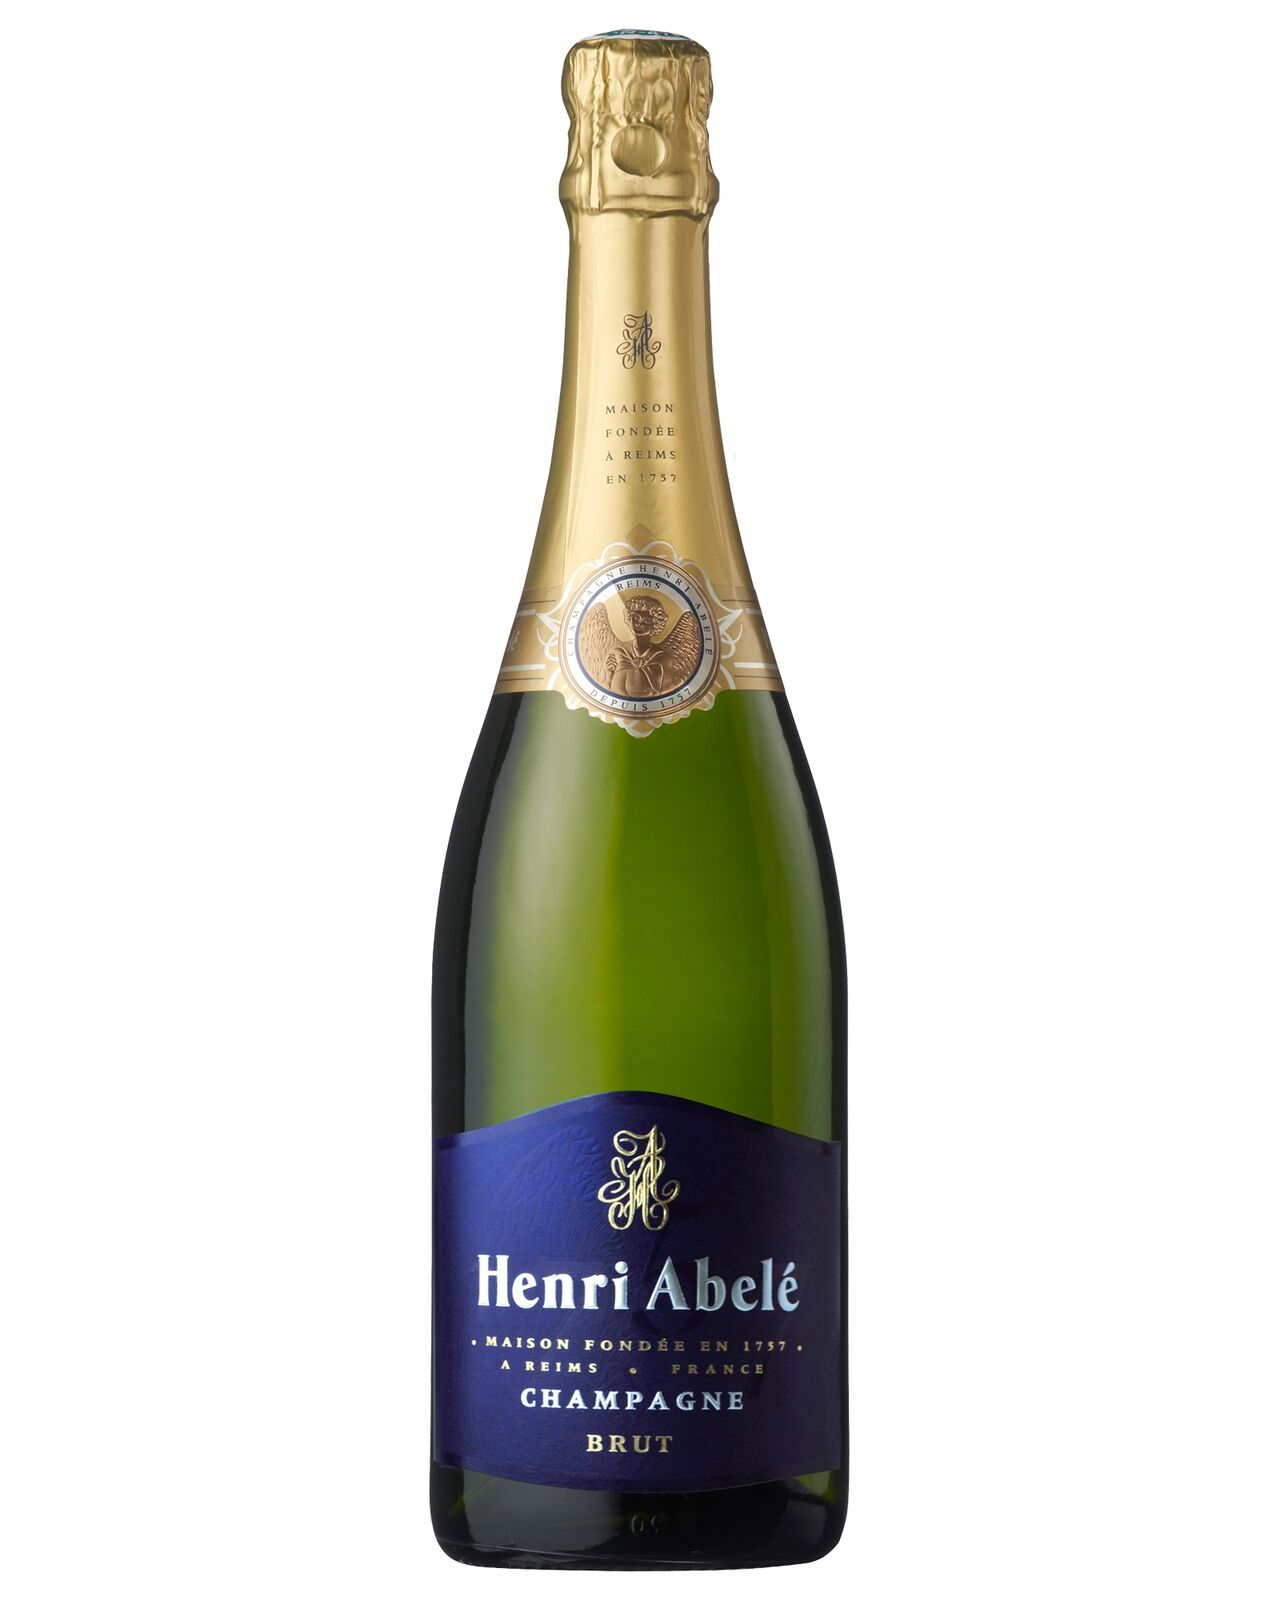 Henri Abele Champagne Brut (Reims) Non Vintage case of 6 Sparkling White Wine